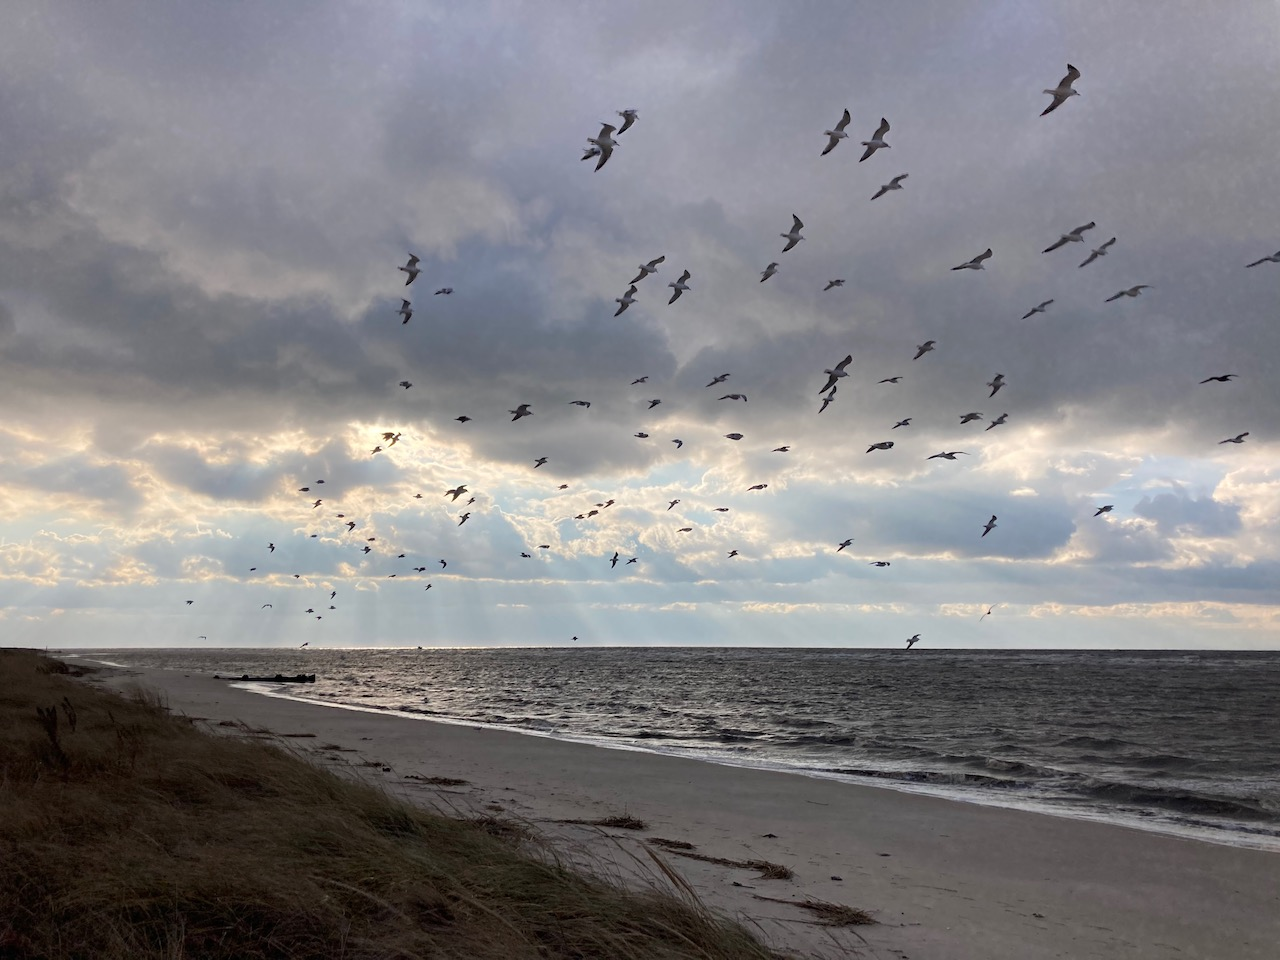 View of beach, with seagulls in air.